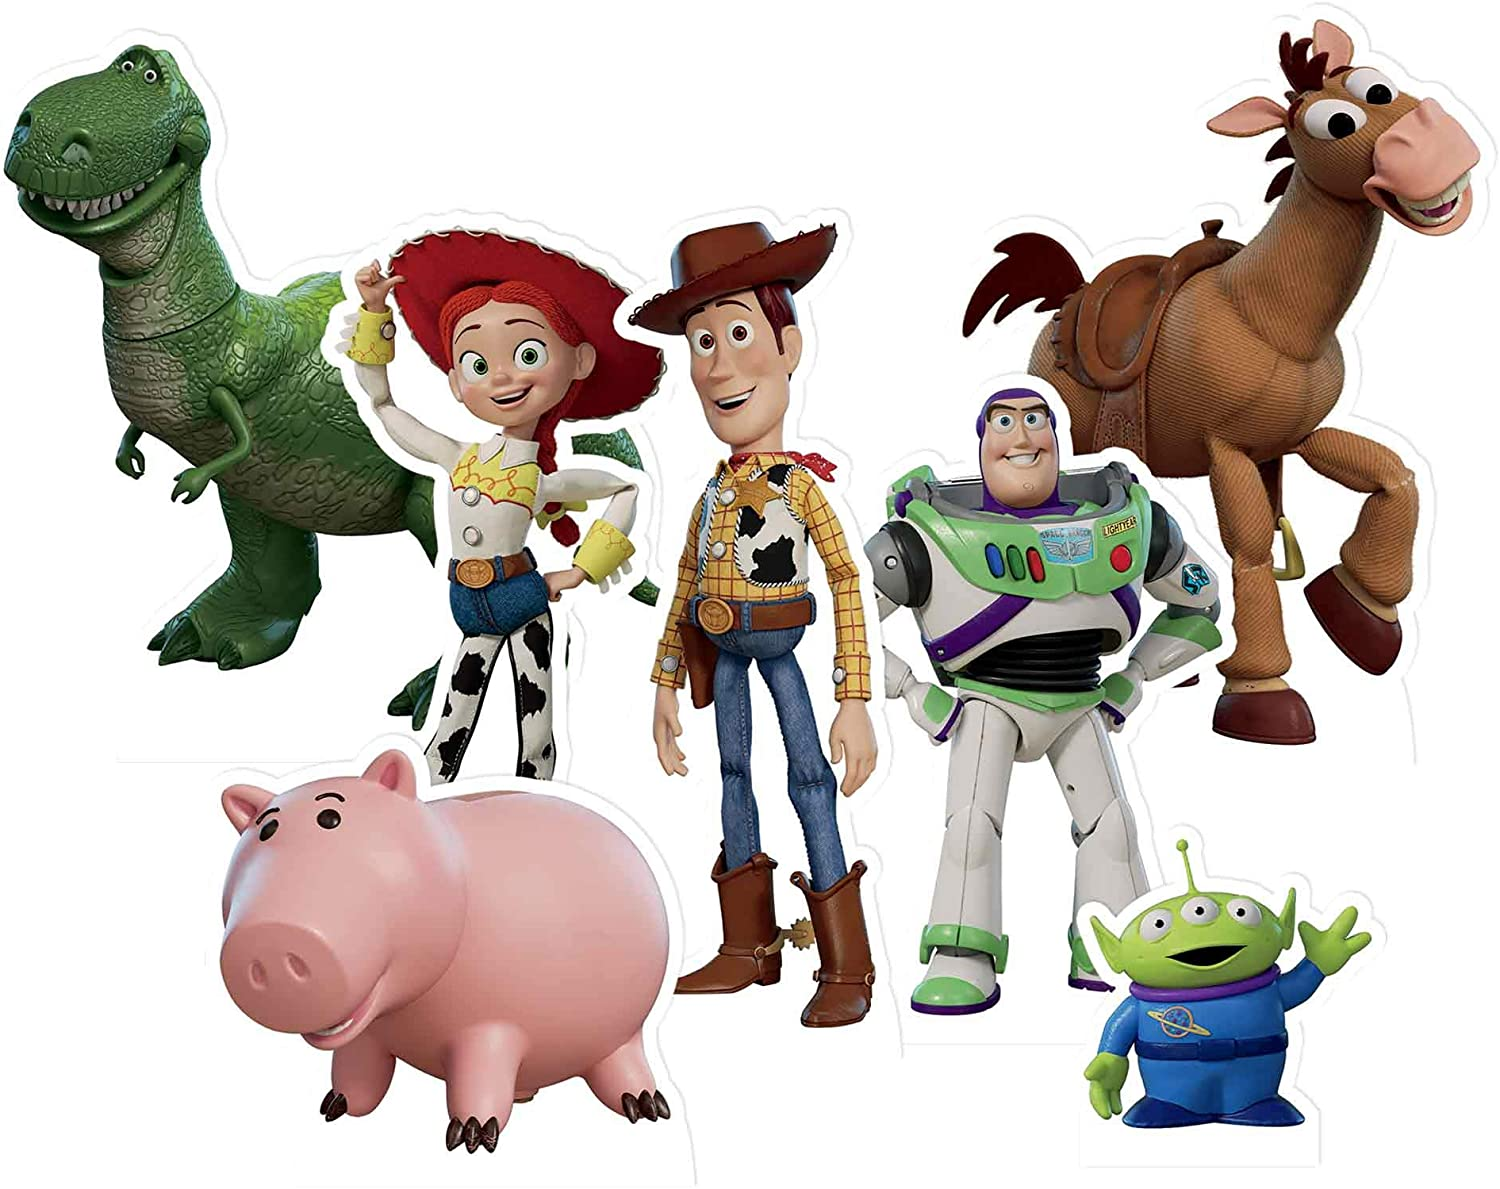 Dedication Star Houston Mall Cutouts Ltd TT018 Toy Story 7 Cut-Outs Toppers Pack Perfe